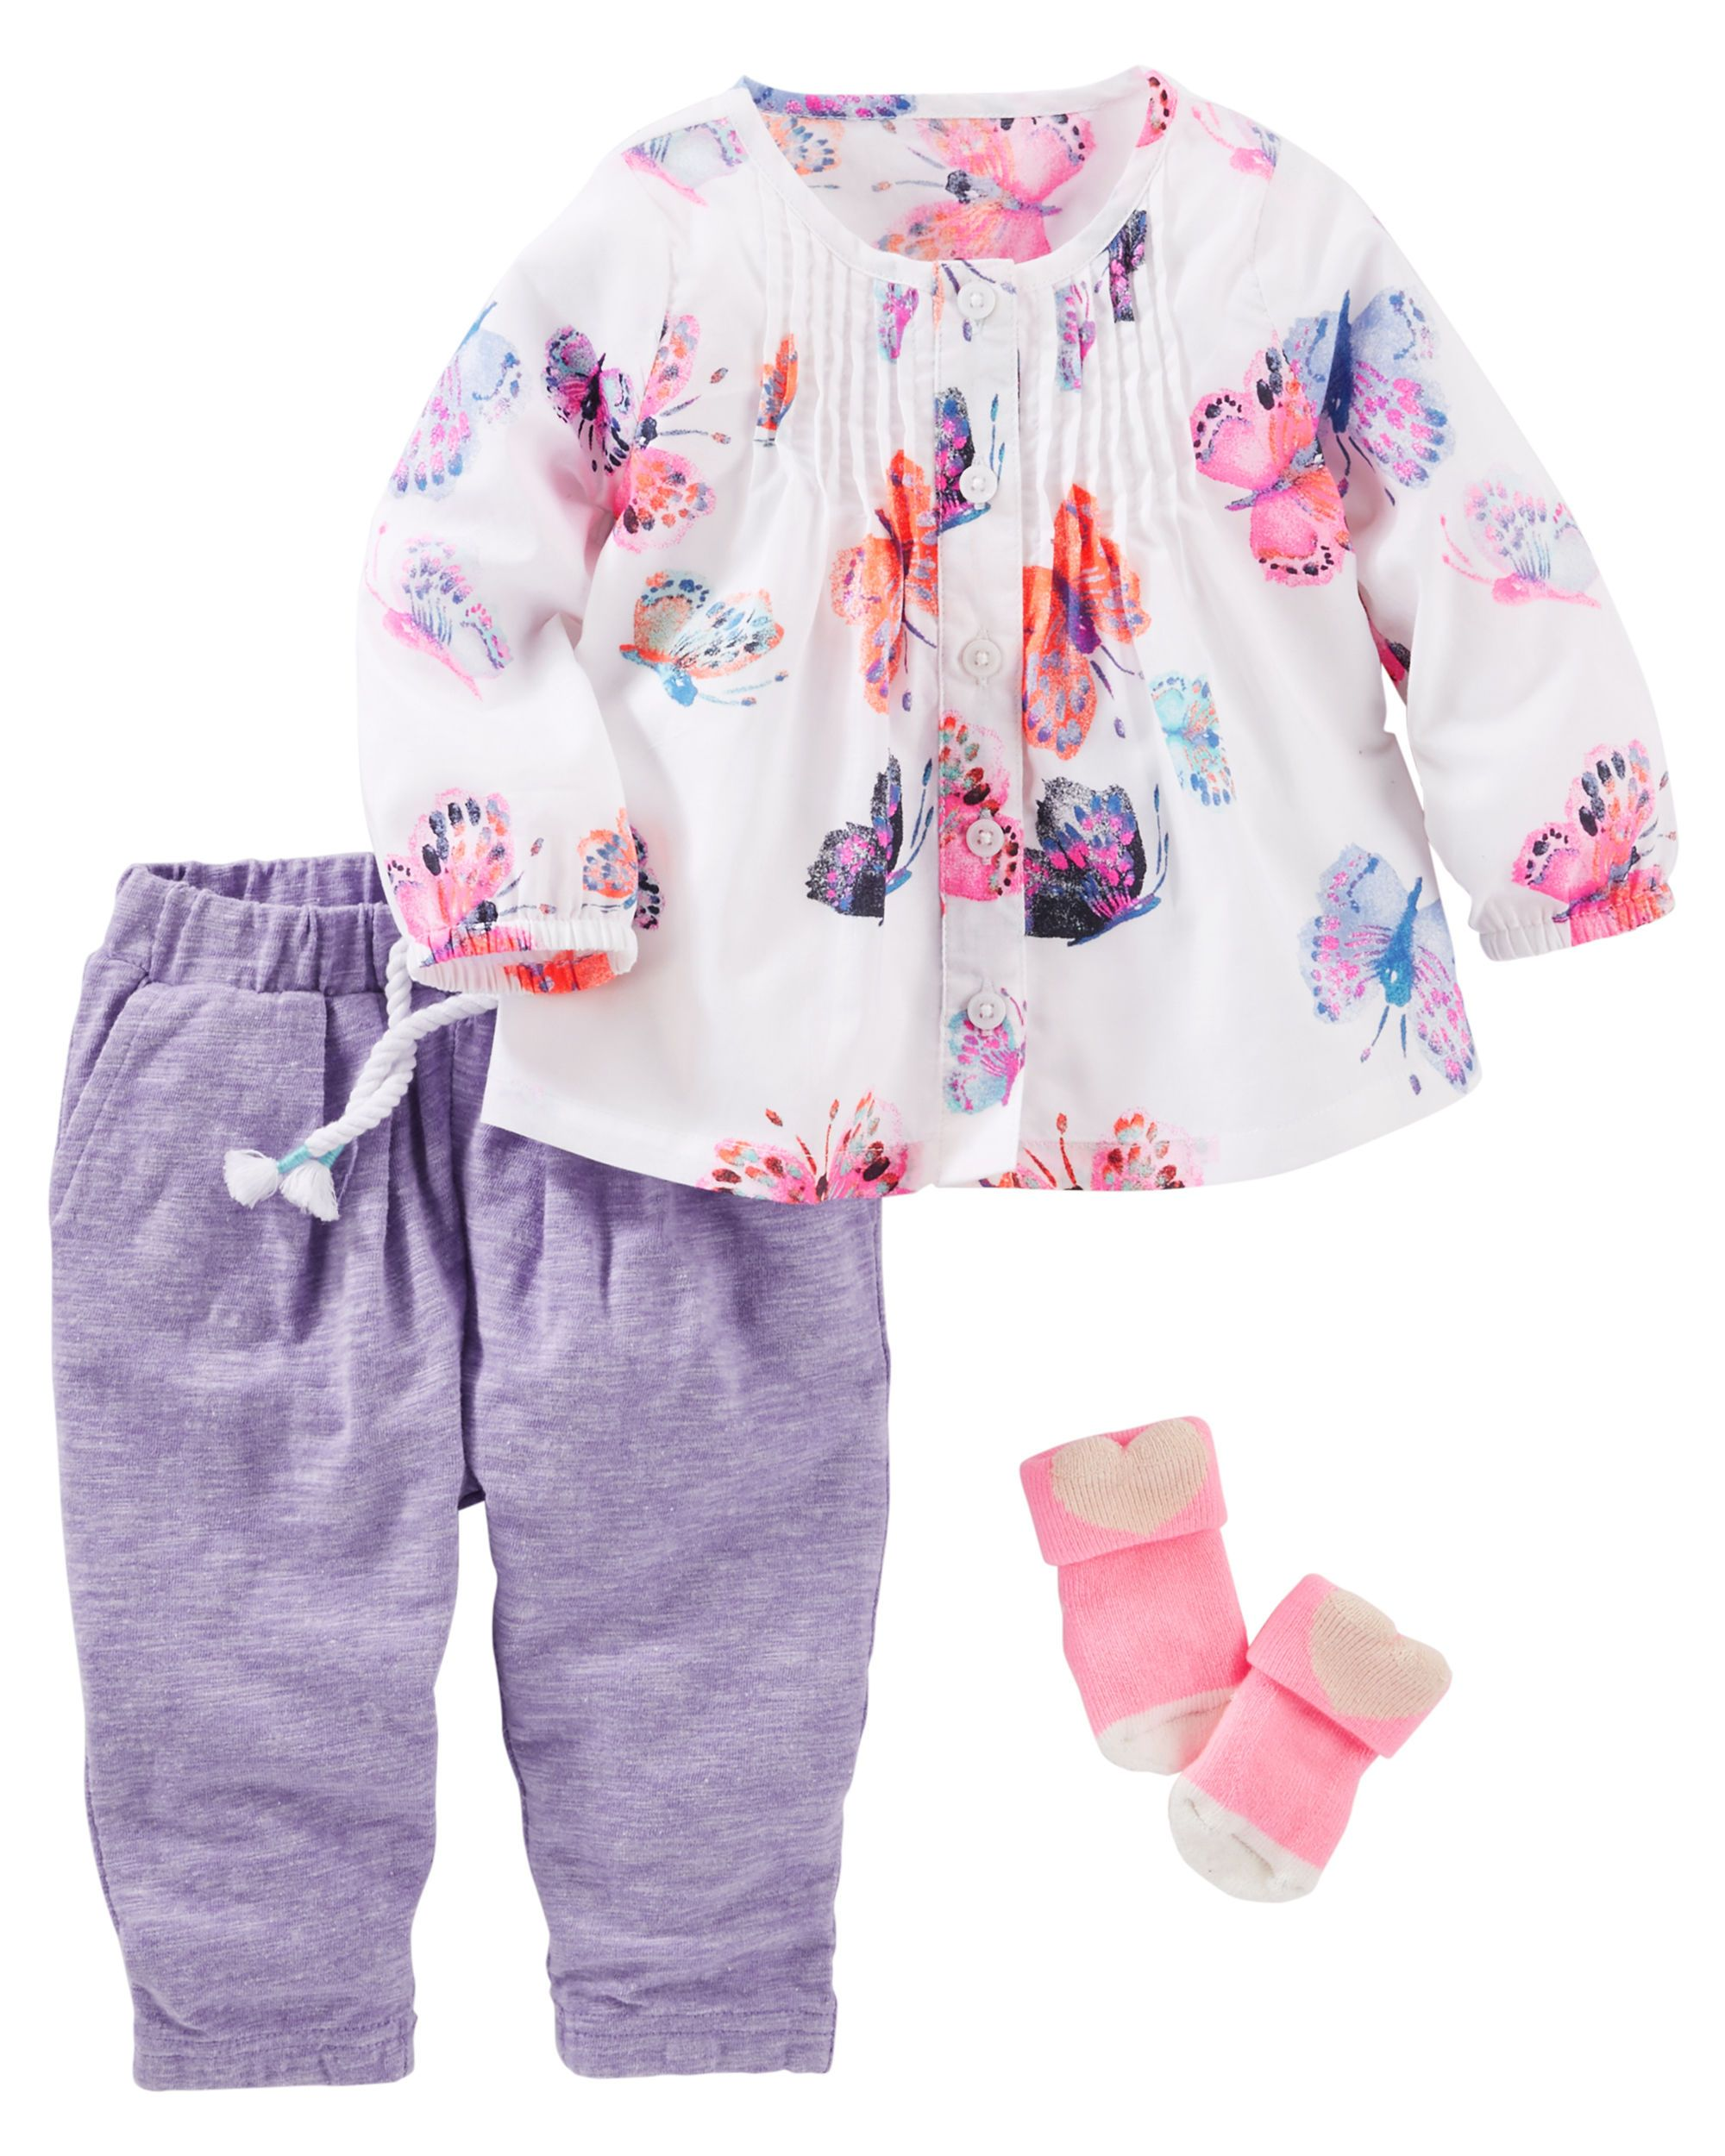 Posh Peanut - Baby Clothes Boutique Go crazy over quality and comfortable clothes and stuff for babies from Posh Peanut. We offer a wide collection of fashionable baby clothes and cute toddler clothes that will let your little girl make a statement!